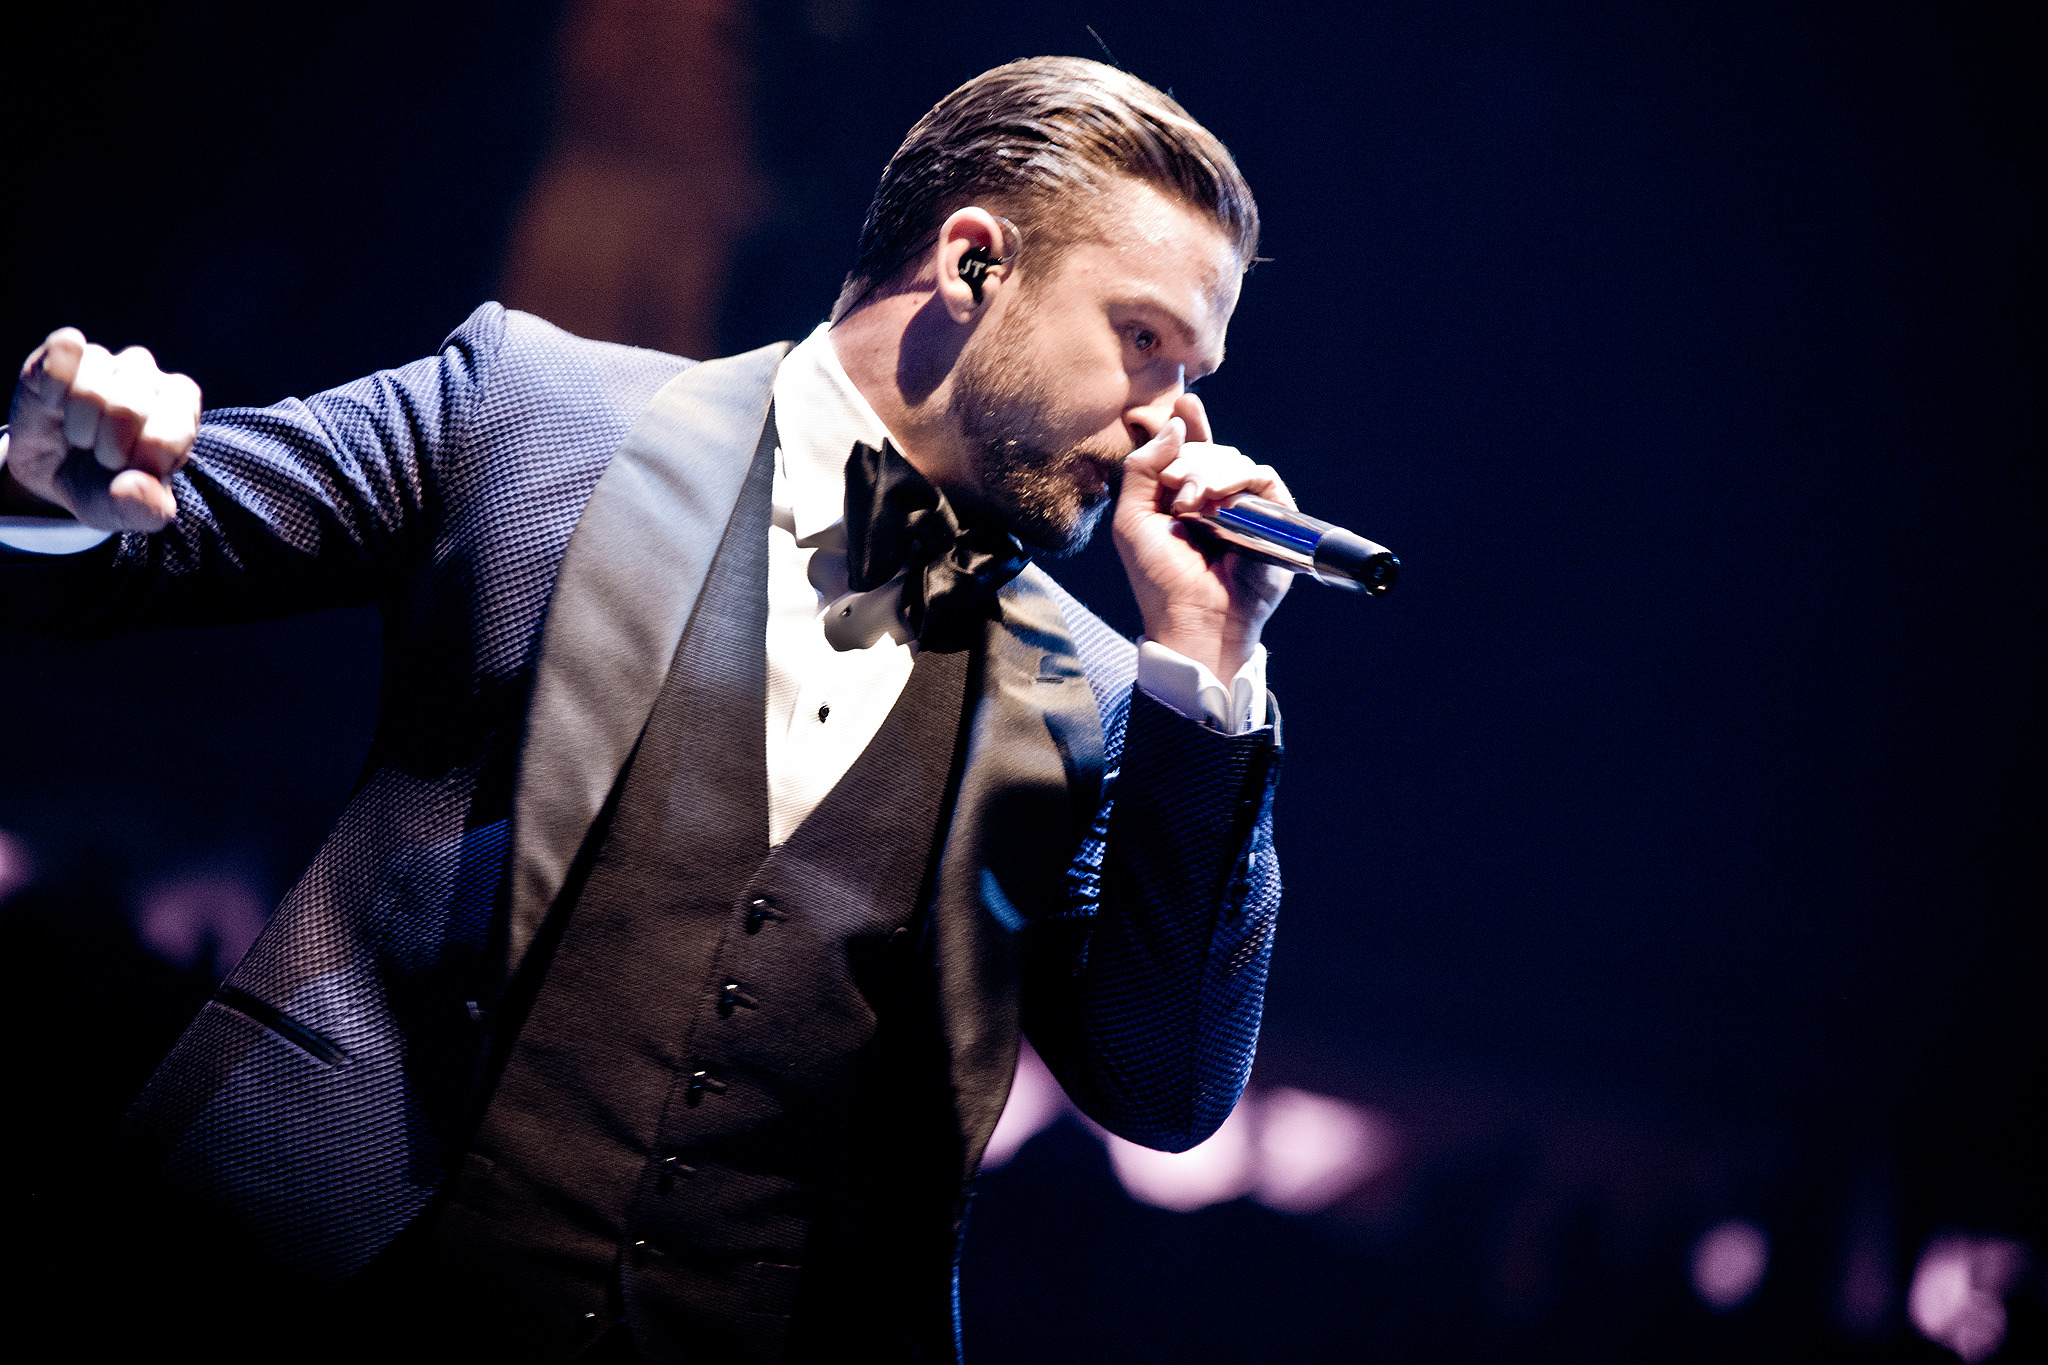 justin timberlake concert photos live at madison square garden